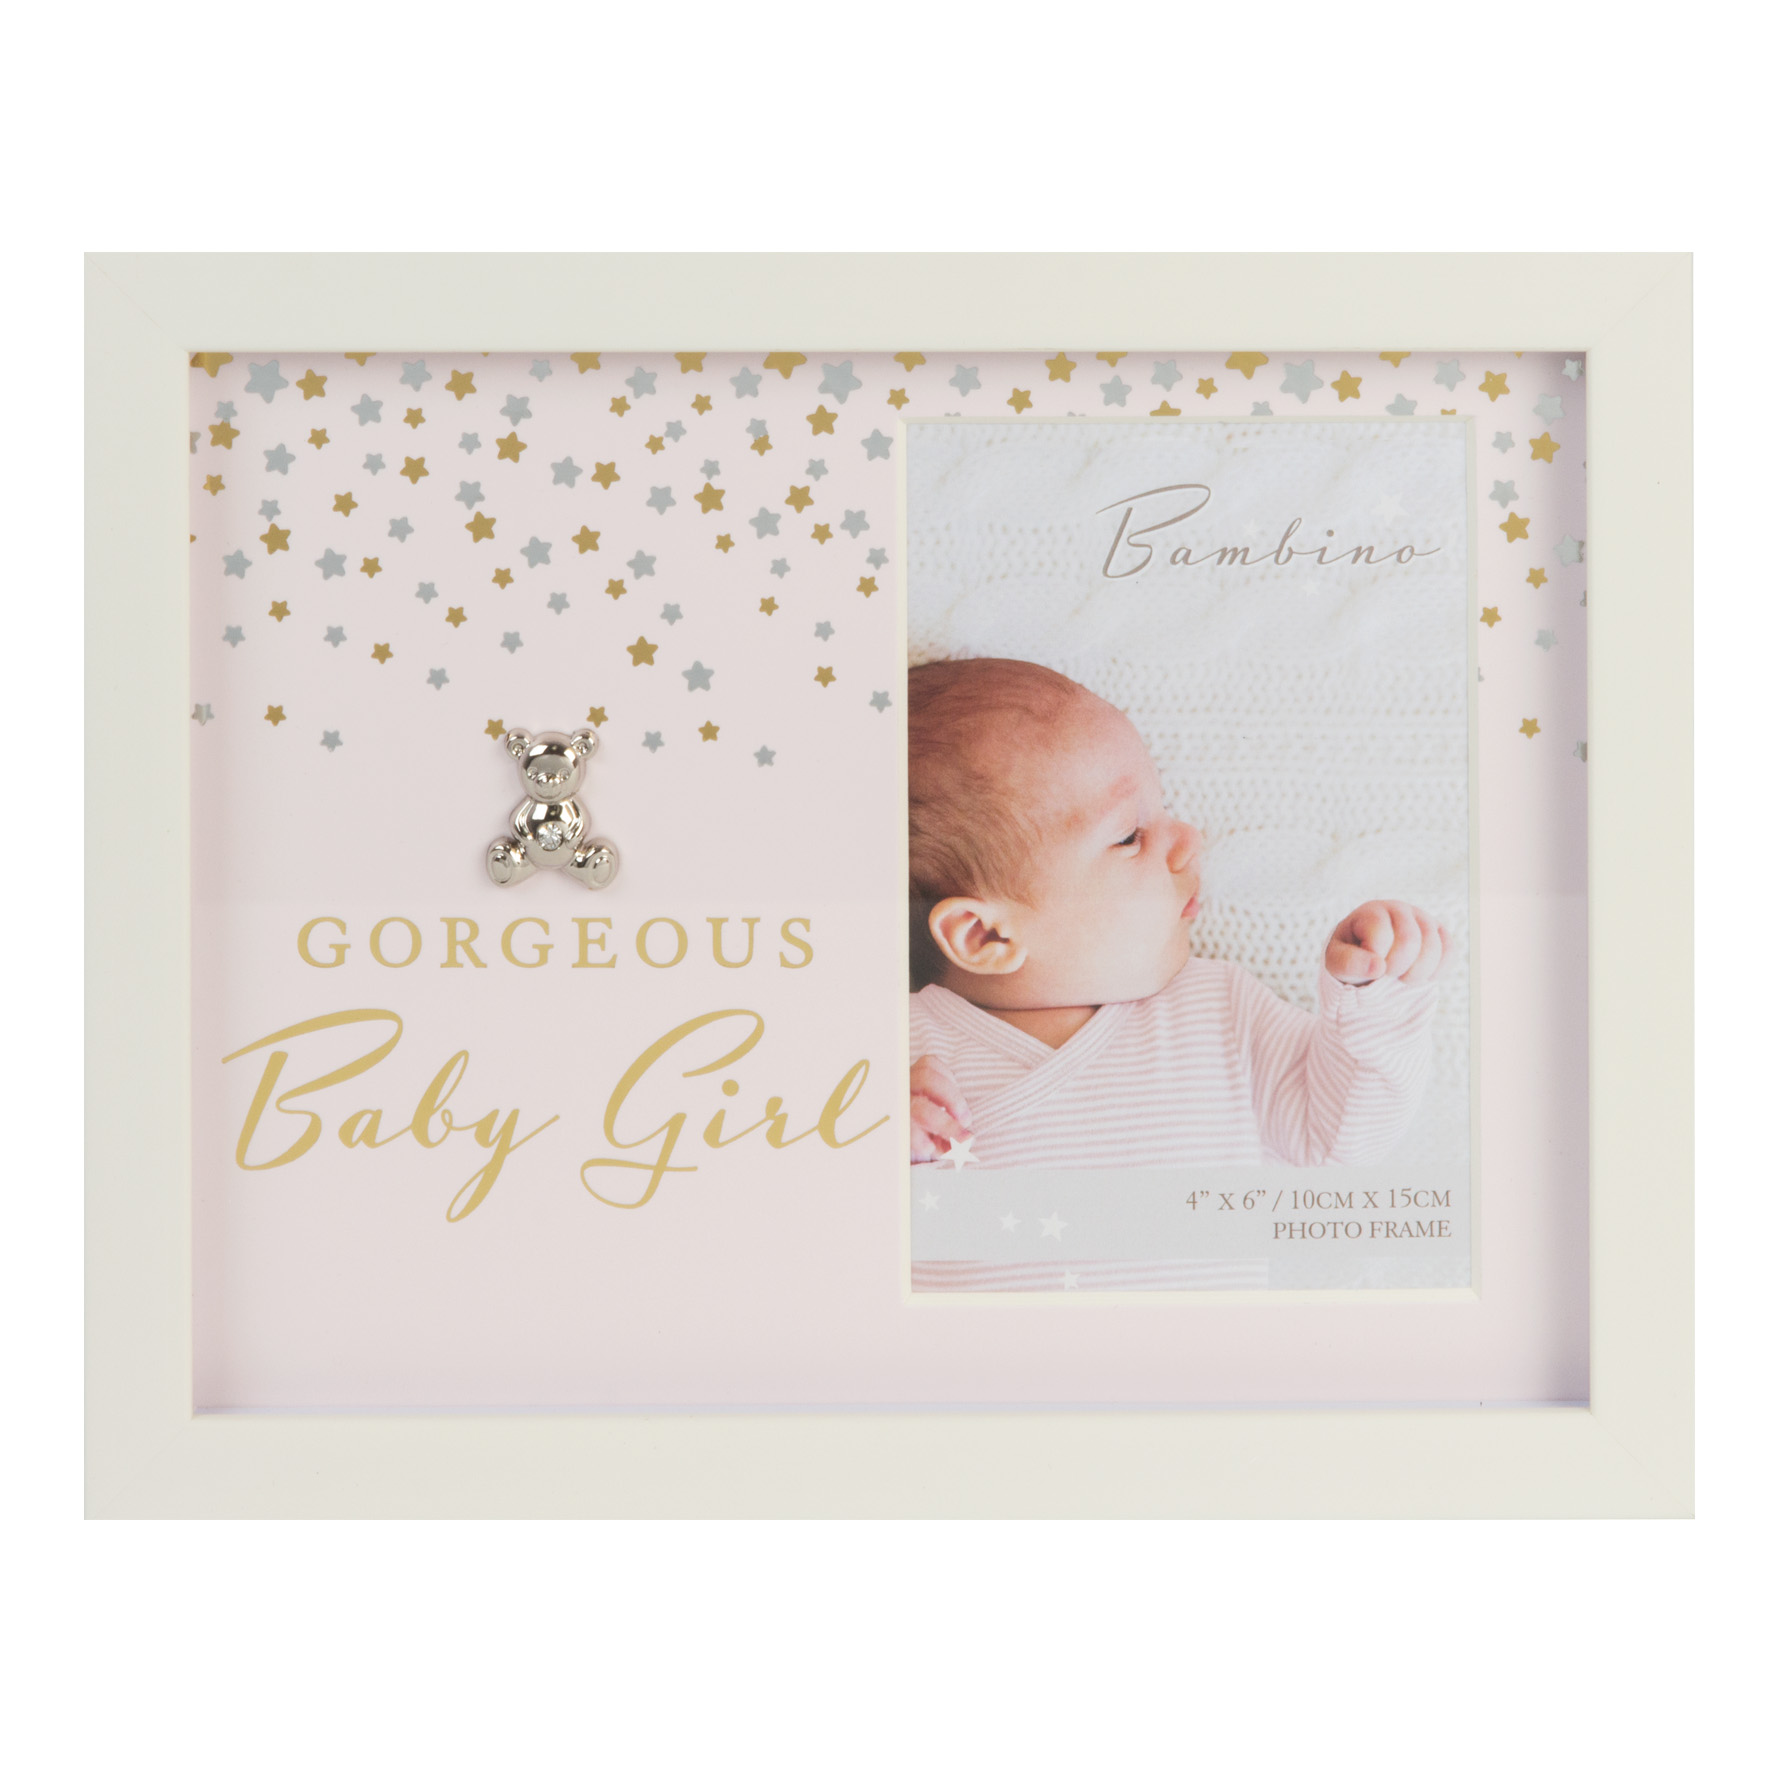 Gorgeous Baby Girl Frame